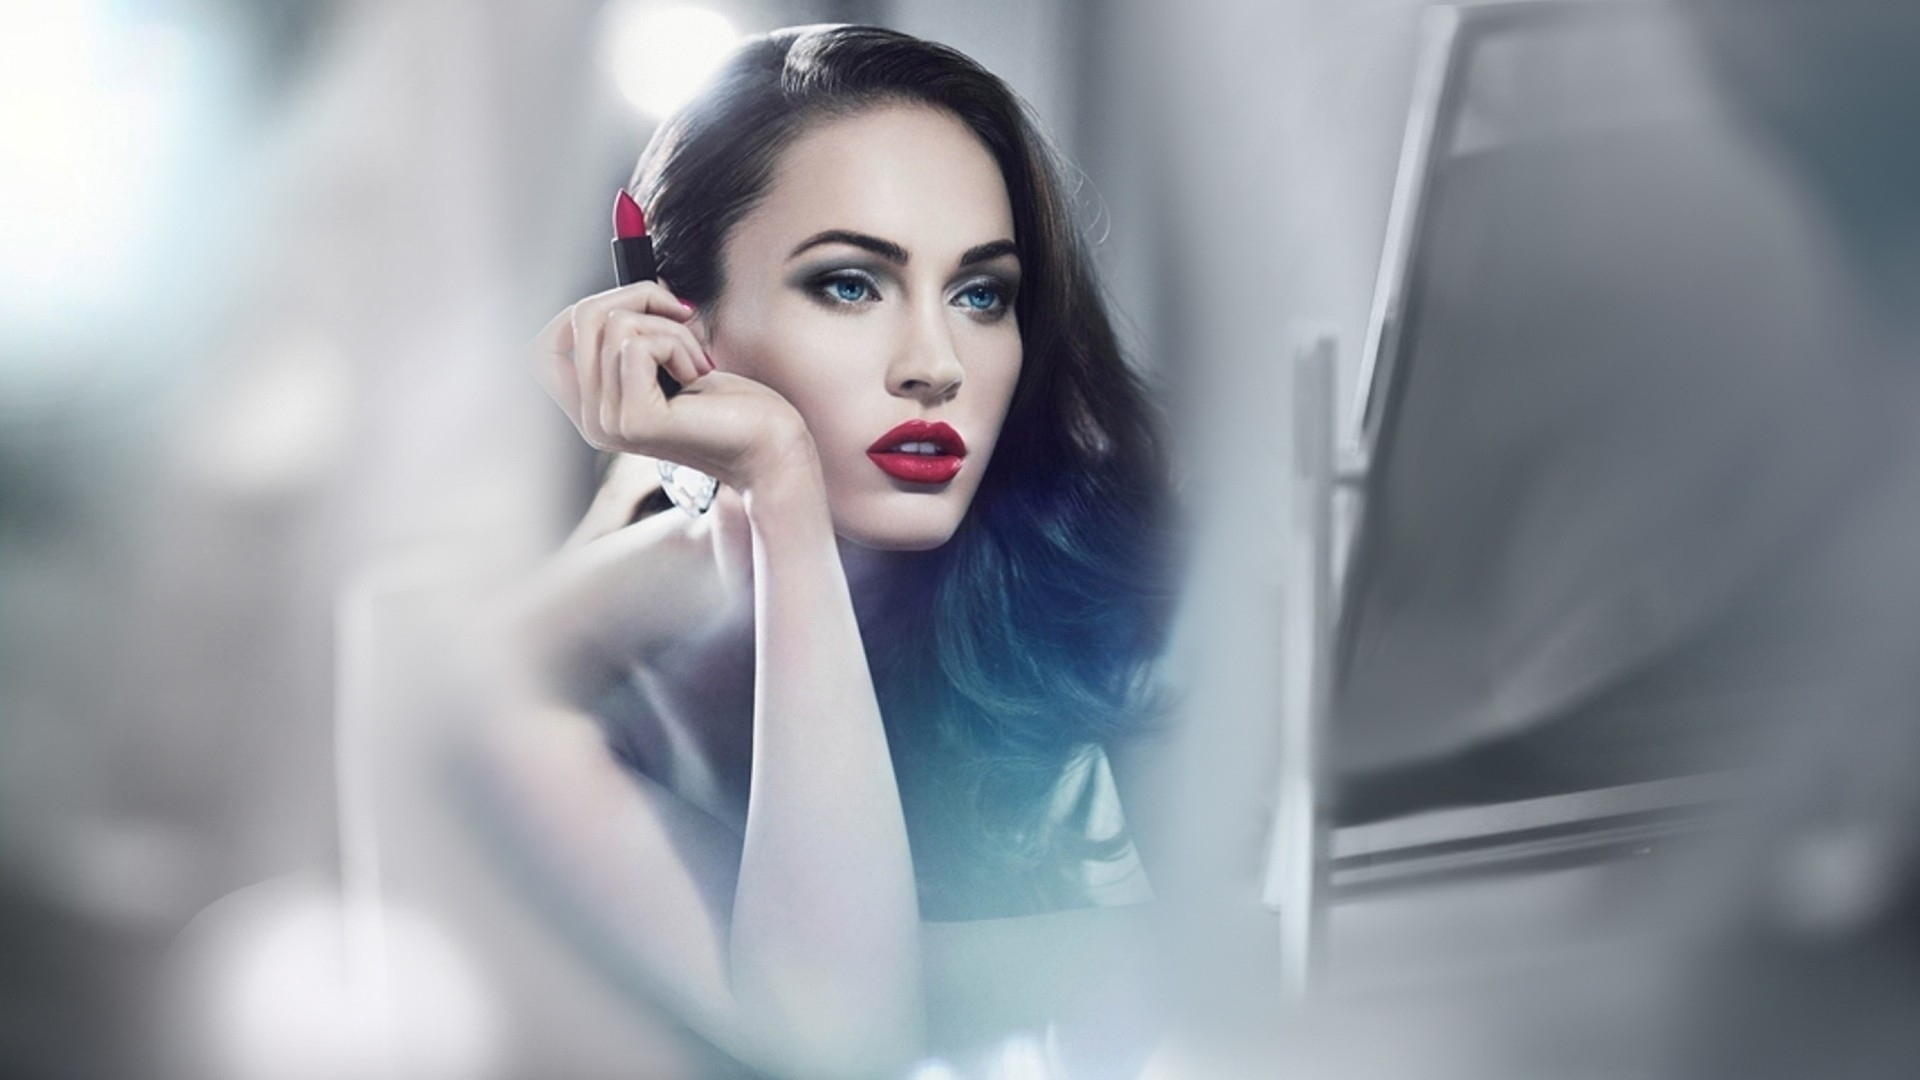 megan fox wallpapers - page 1 - hd wallpapers